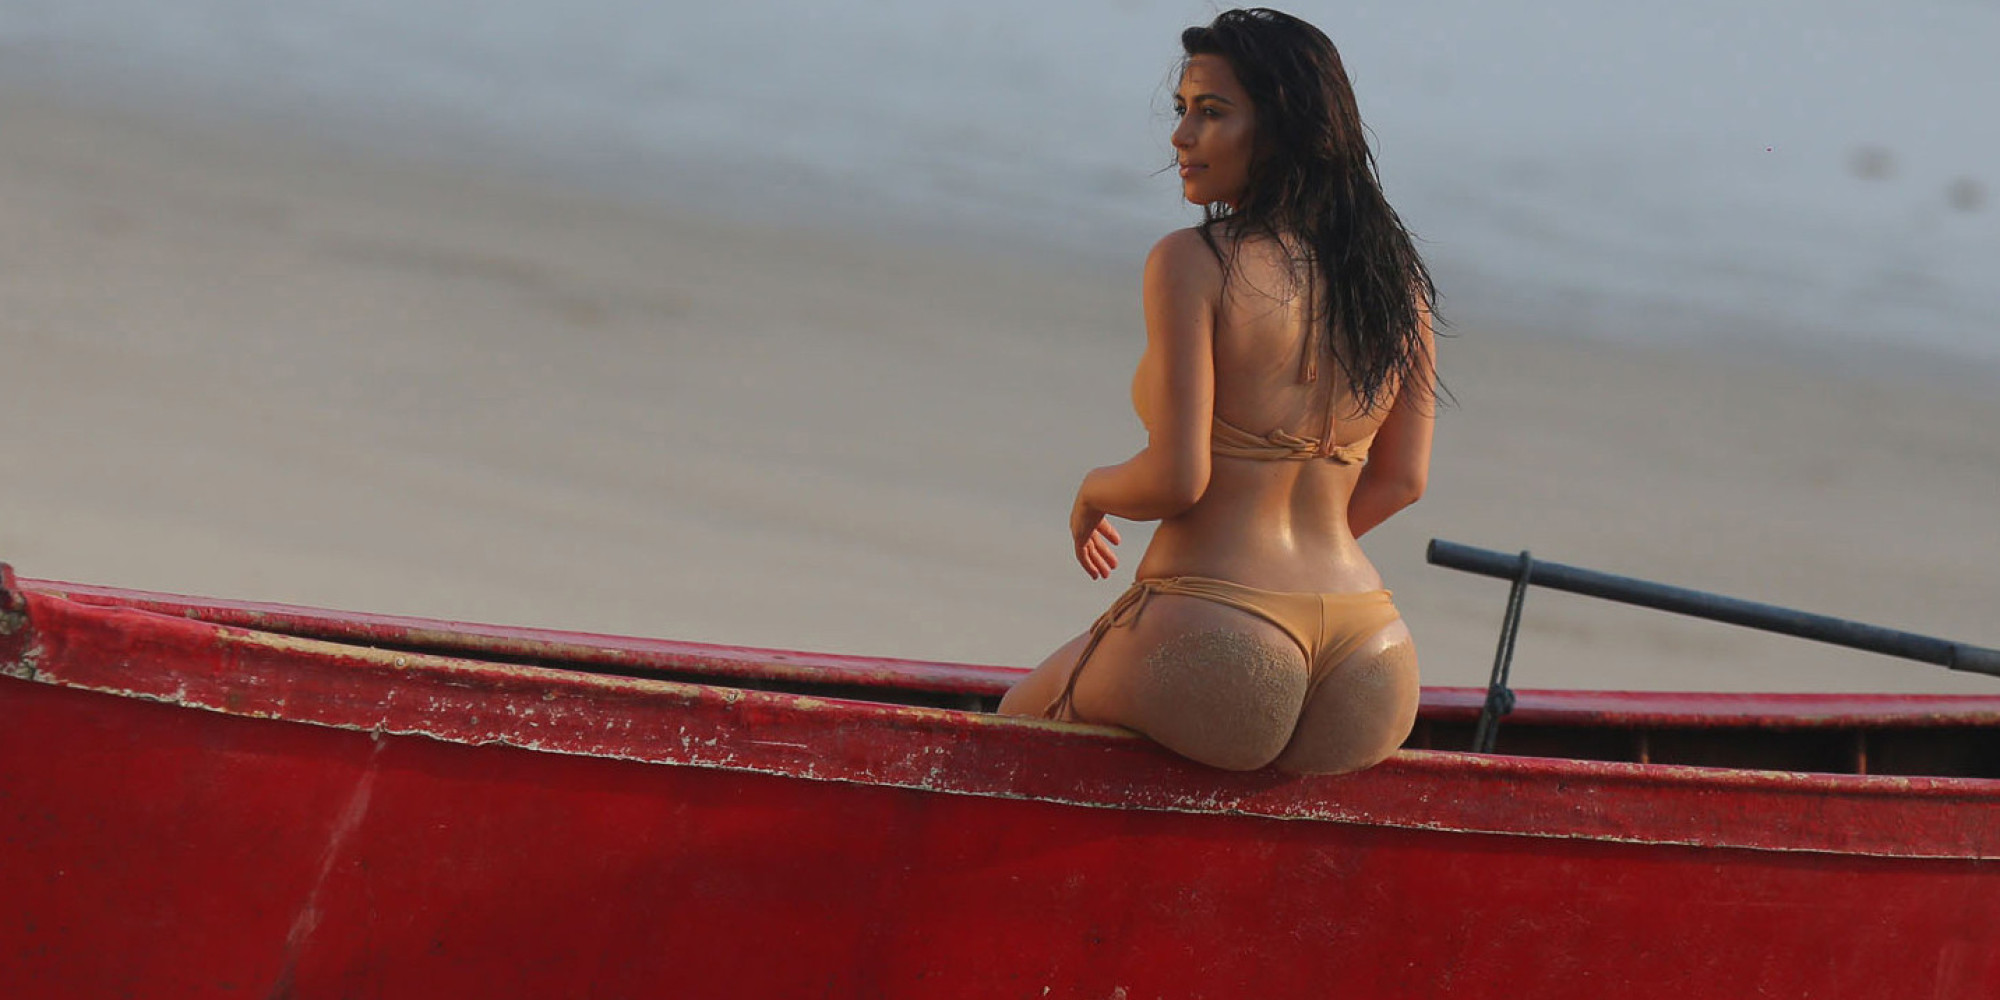 EXCLUSIVE: **PREMIUM EXCLUSIVE**Kim Kardashian shows off her famous booty in a nude-coloured bikini on a photo shoot in Thailand. Picture taken March 31. Pictured: Kim Kardashian Ref: SPL734500 080414 EXCLUSIVE Picture by: Brian Prahl / Splash News Splash News and Pictures Los Angeles:310-821-2666 New York: 212-619-2666 London: 870-934-2666 photodesk@splashnews.com